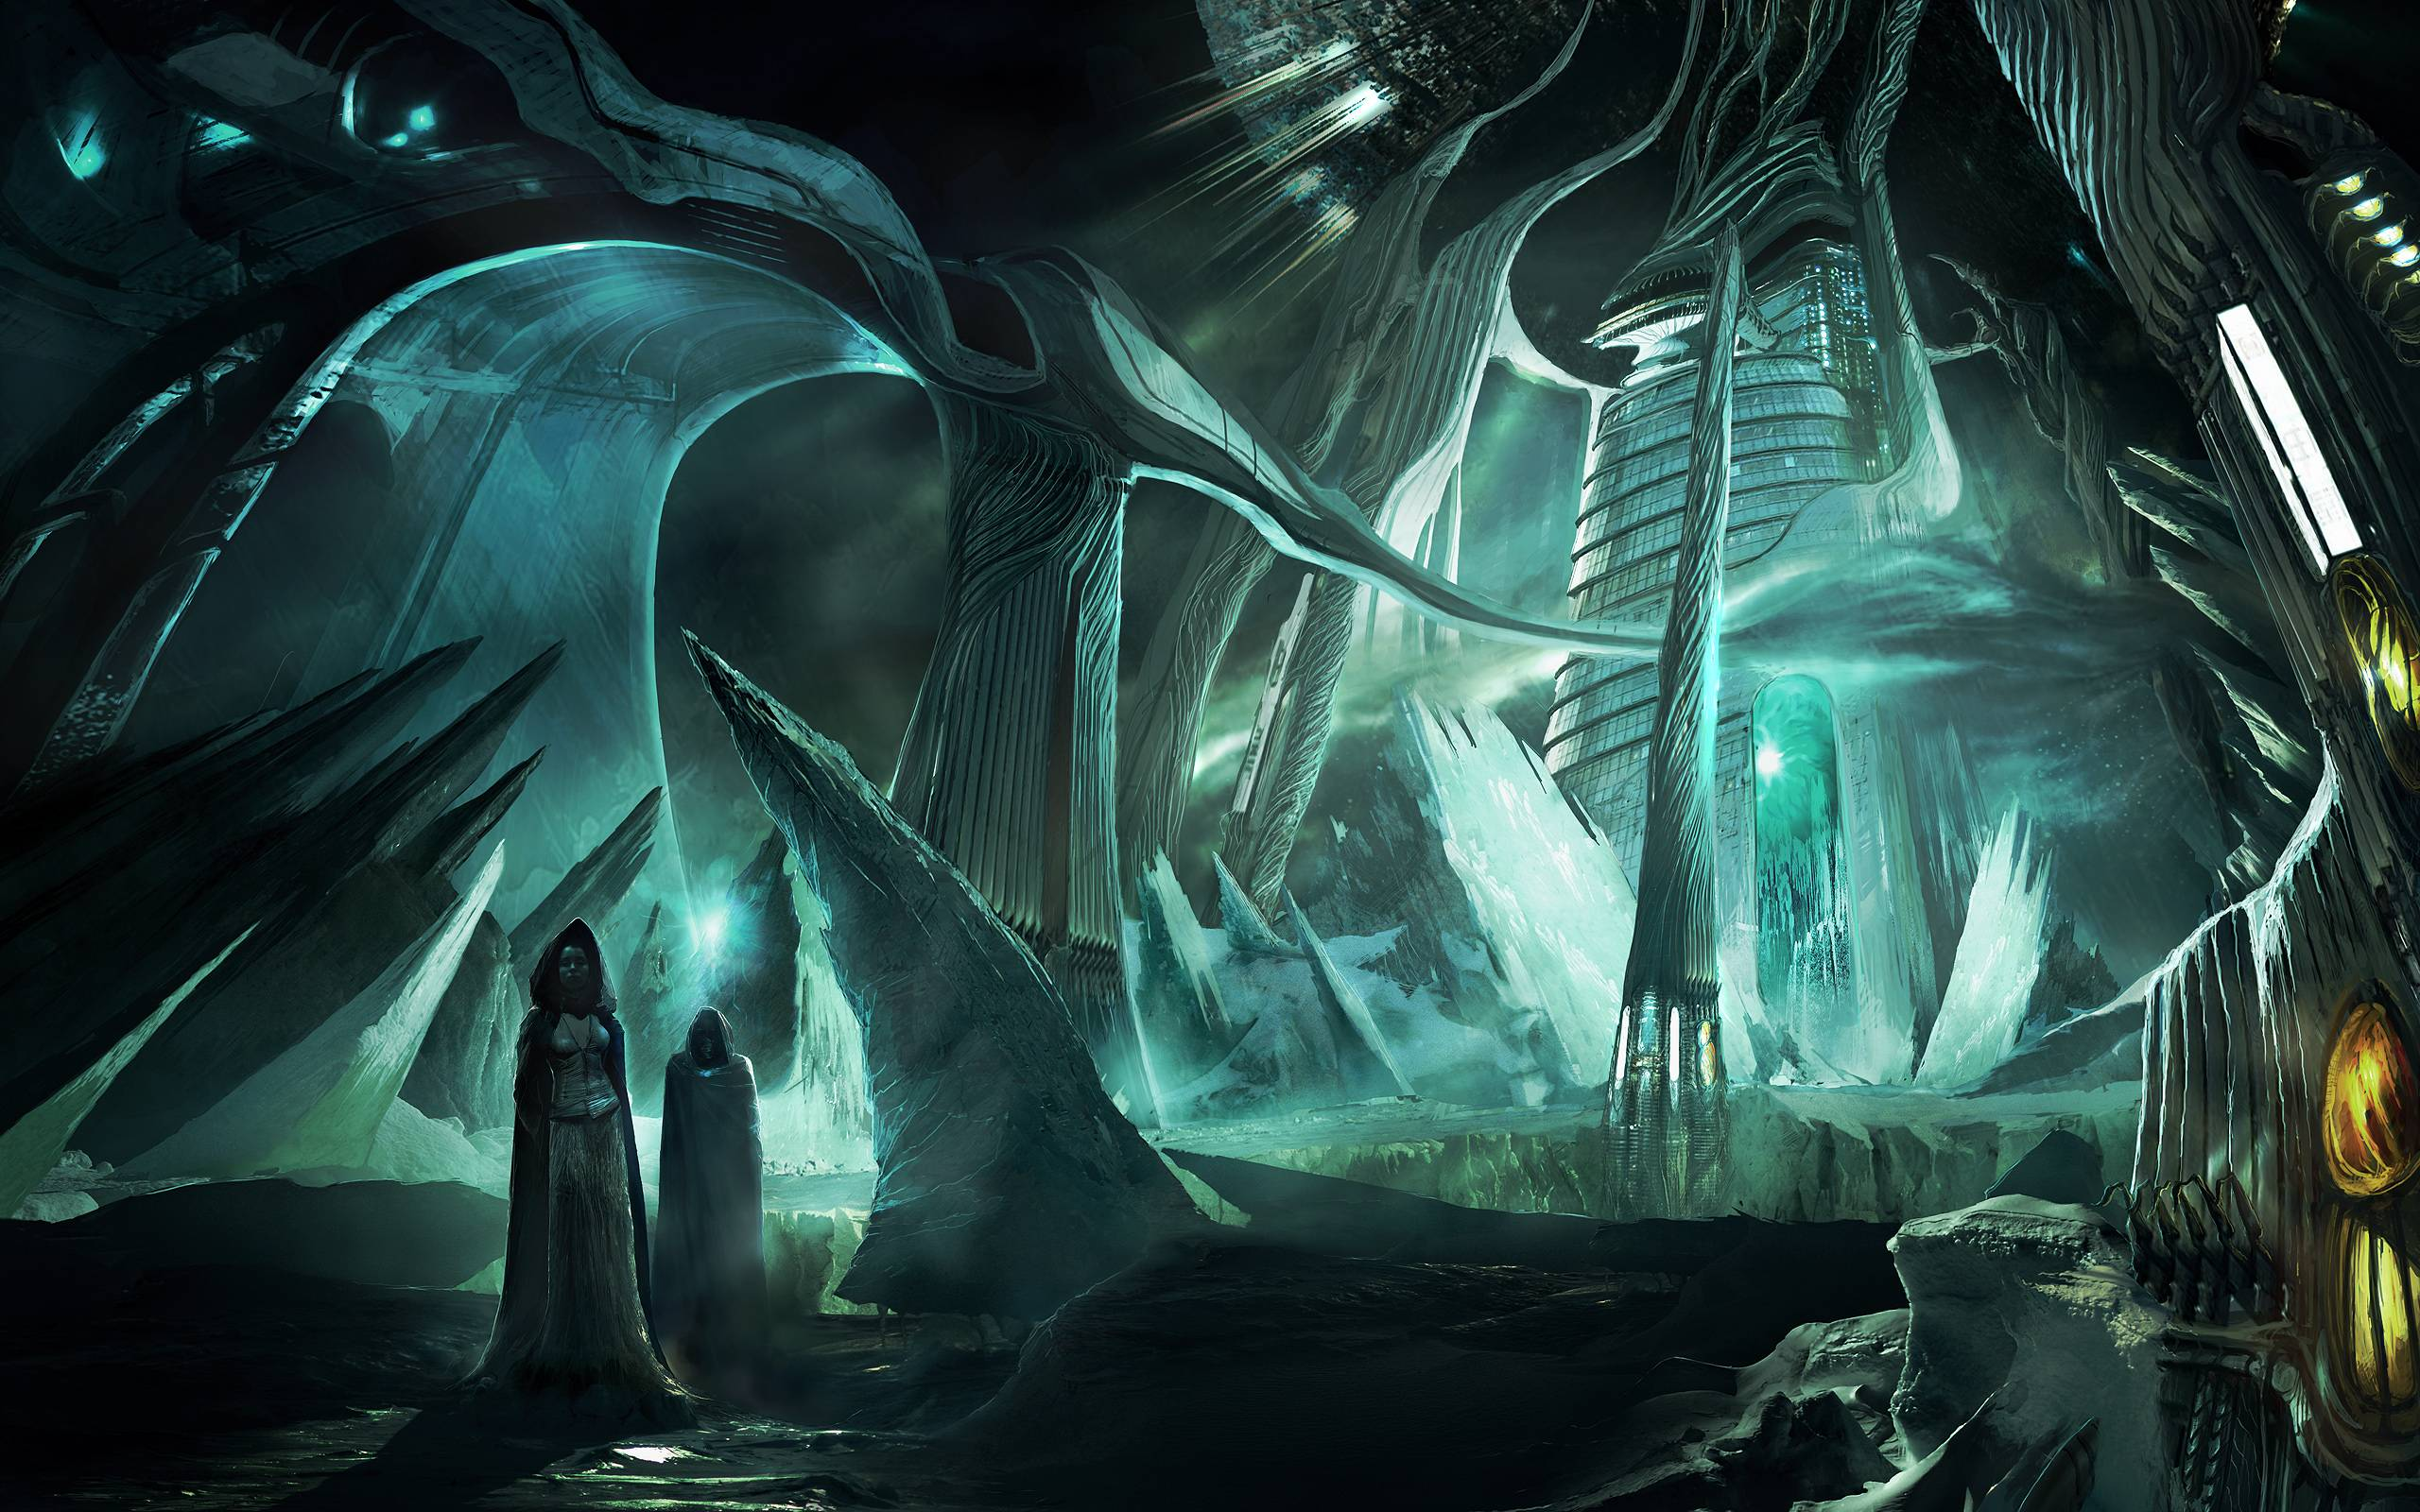 Sci Fi Backgrounds - Wallpaper Cave